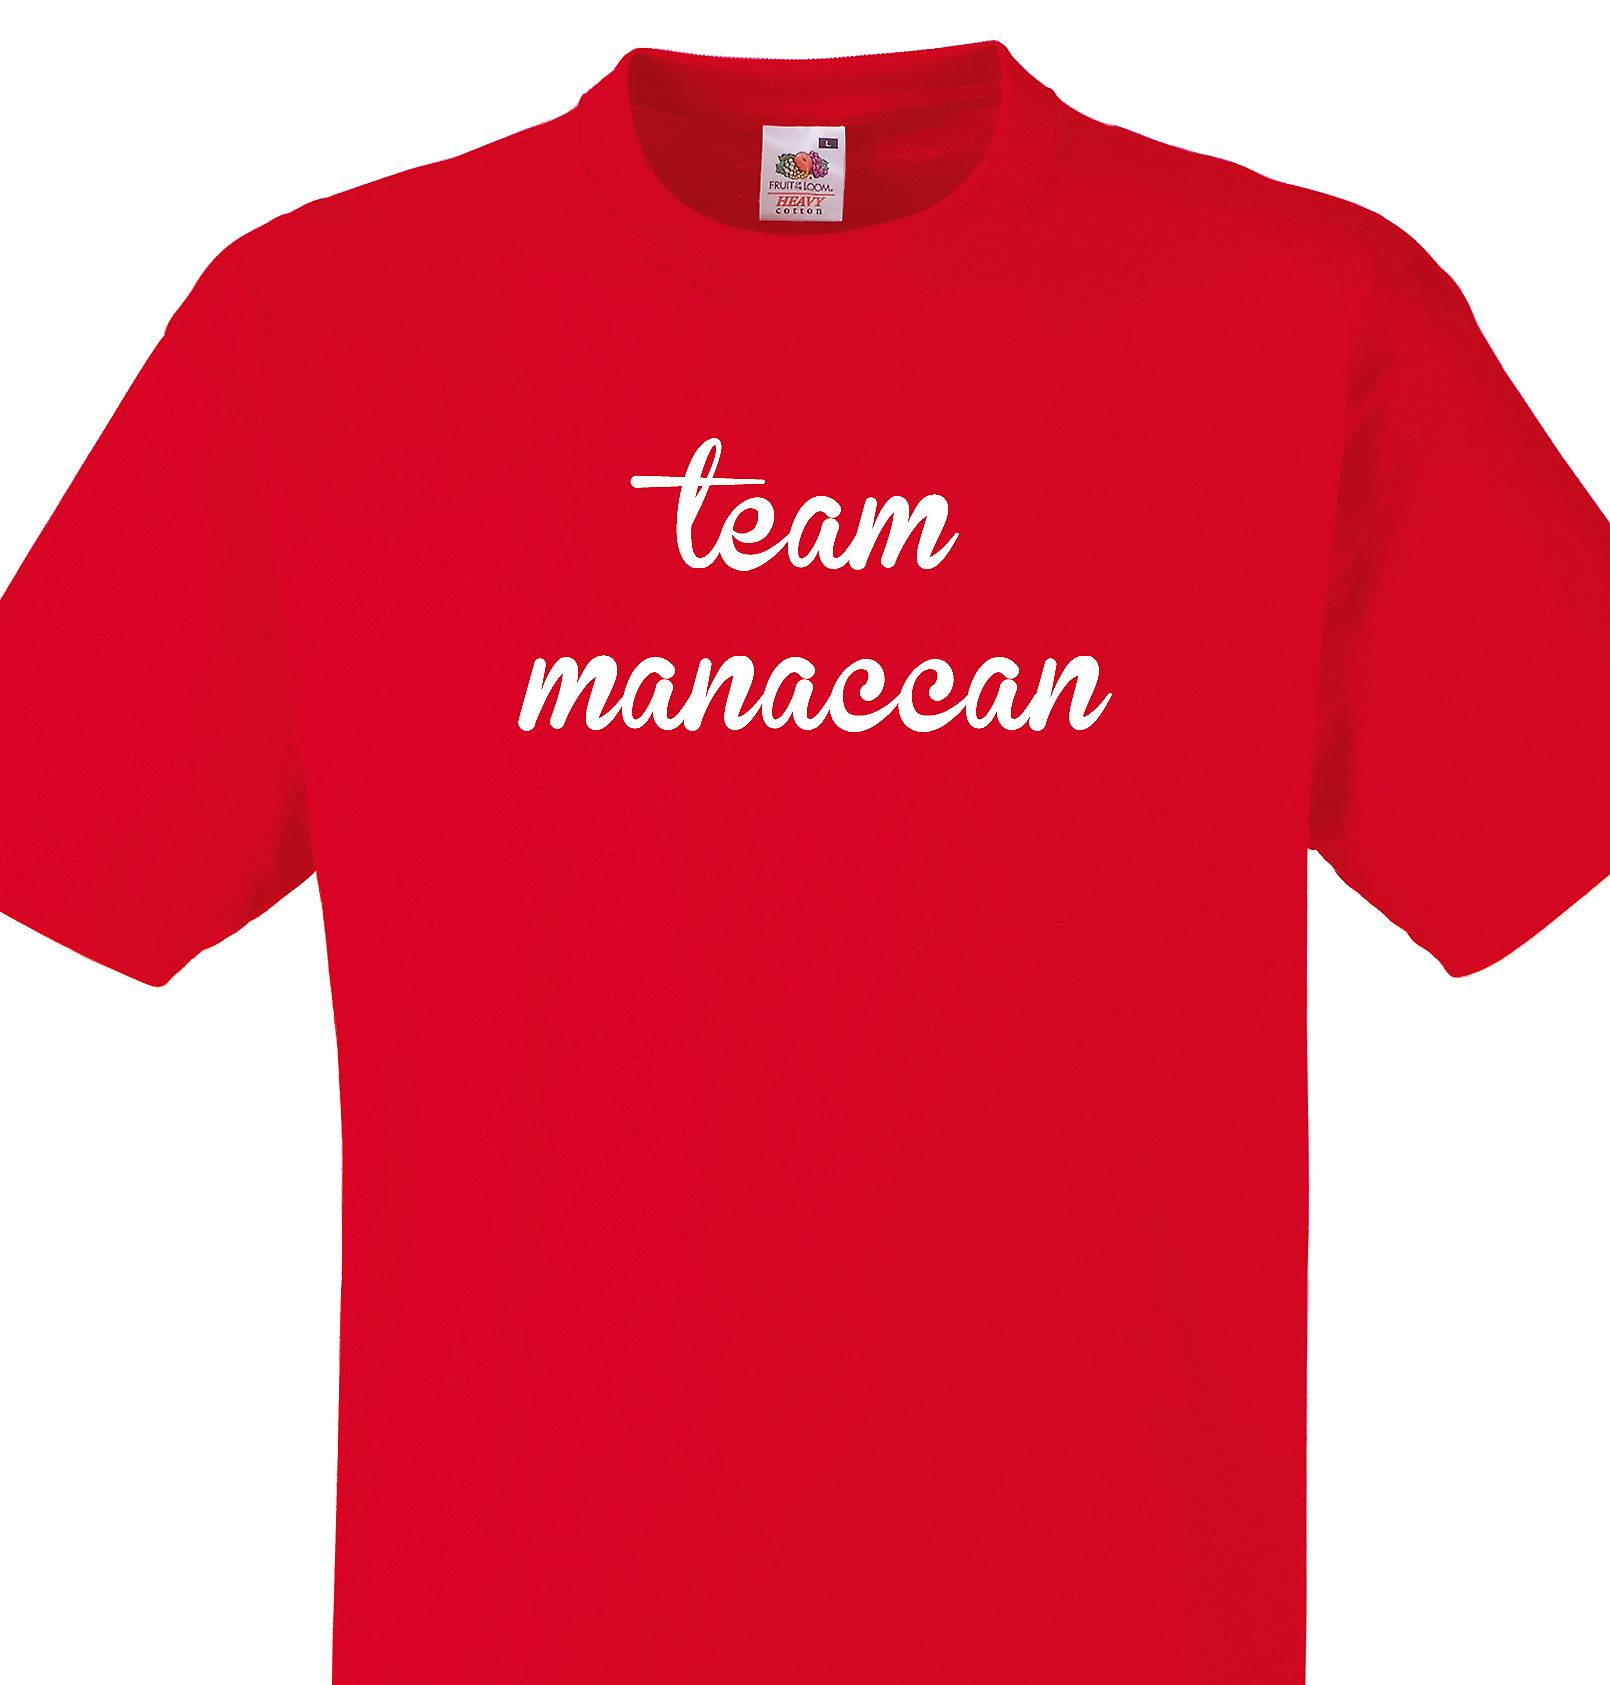 Team Manaccan Red T shirt